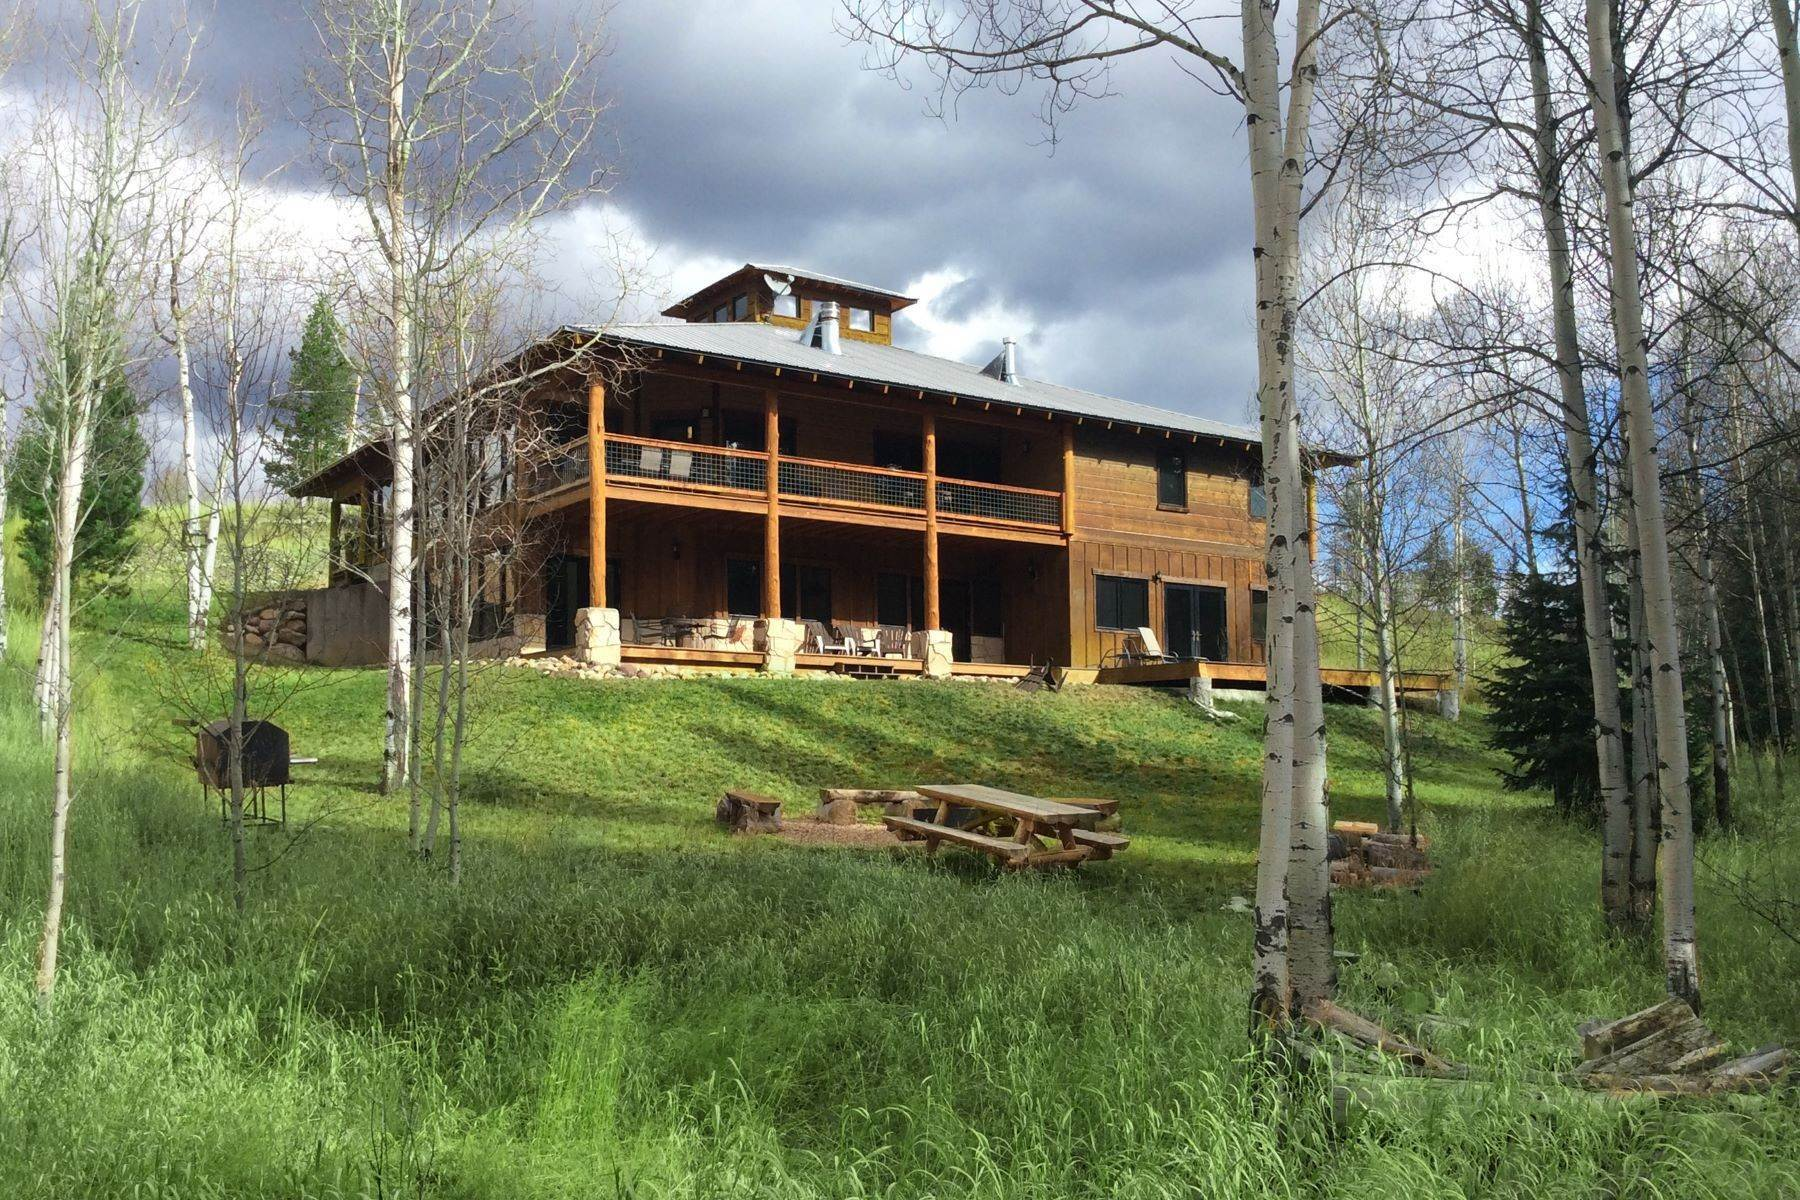 Property for Sale at Stagecoach Seclusion 32935 & 32950 Maverick Way Oak Creek, Colorado 80467 United States